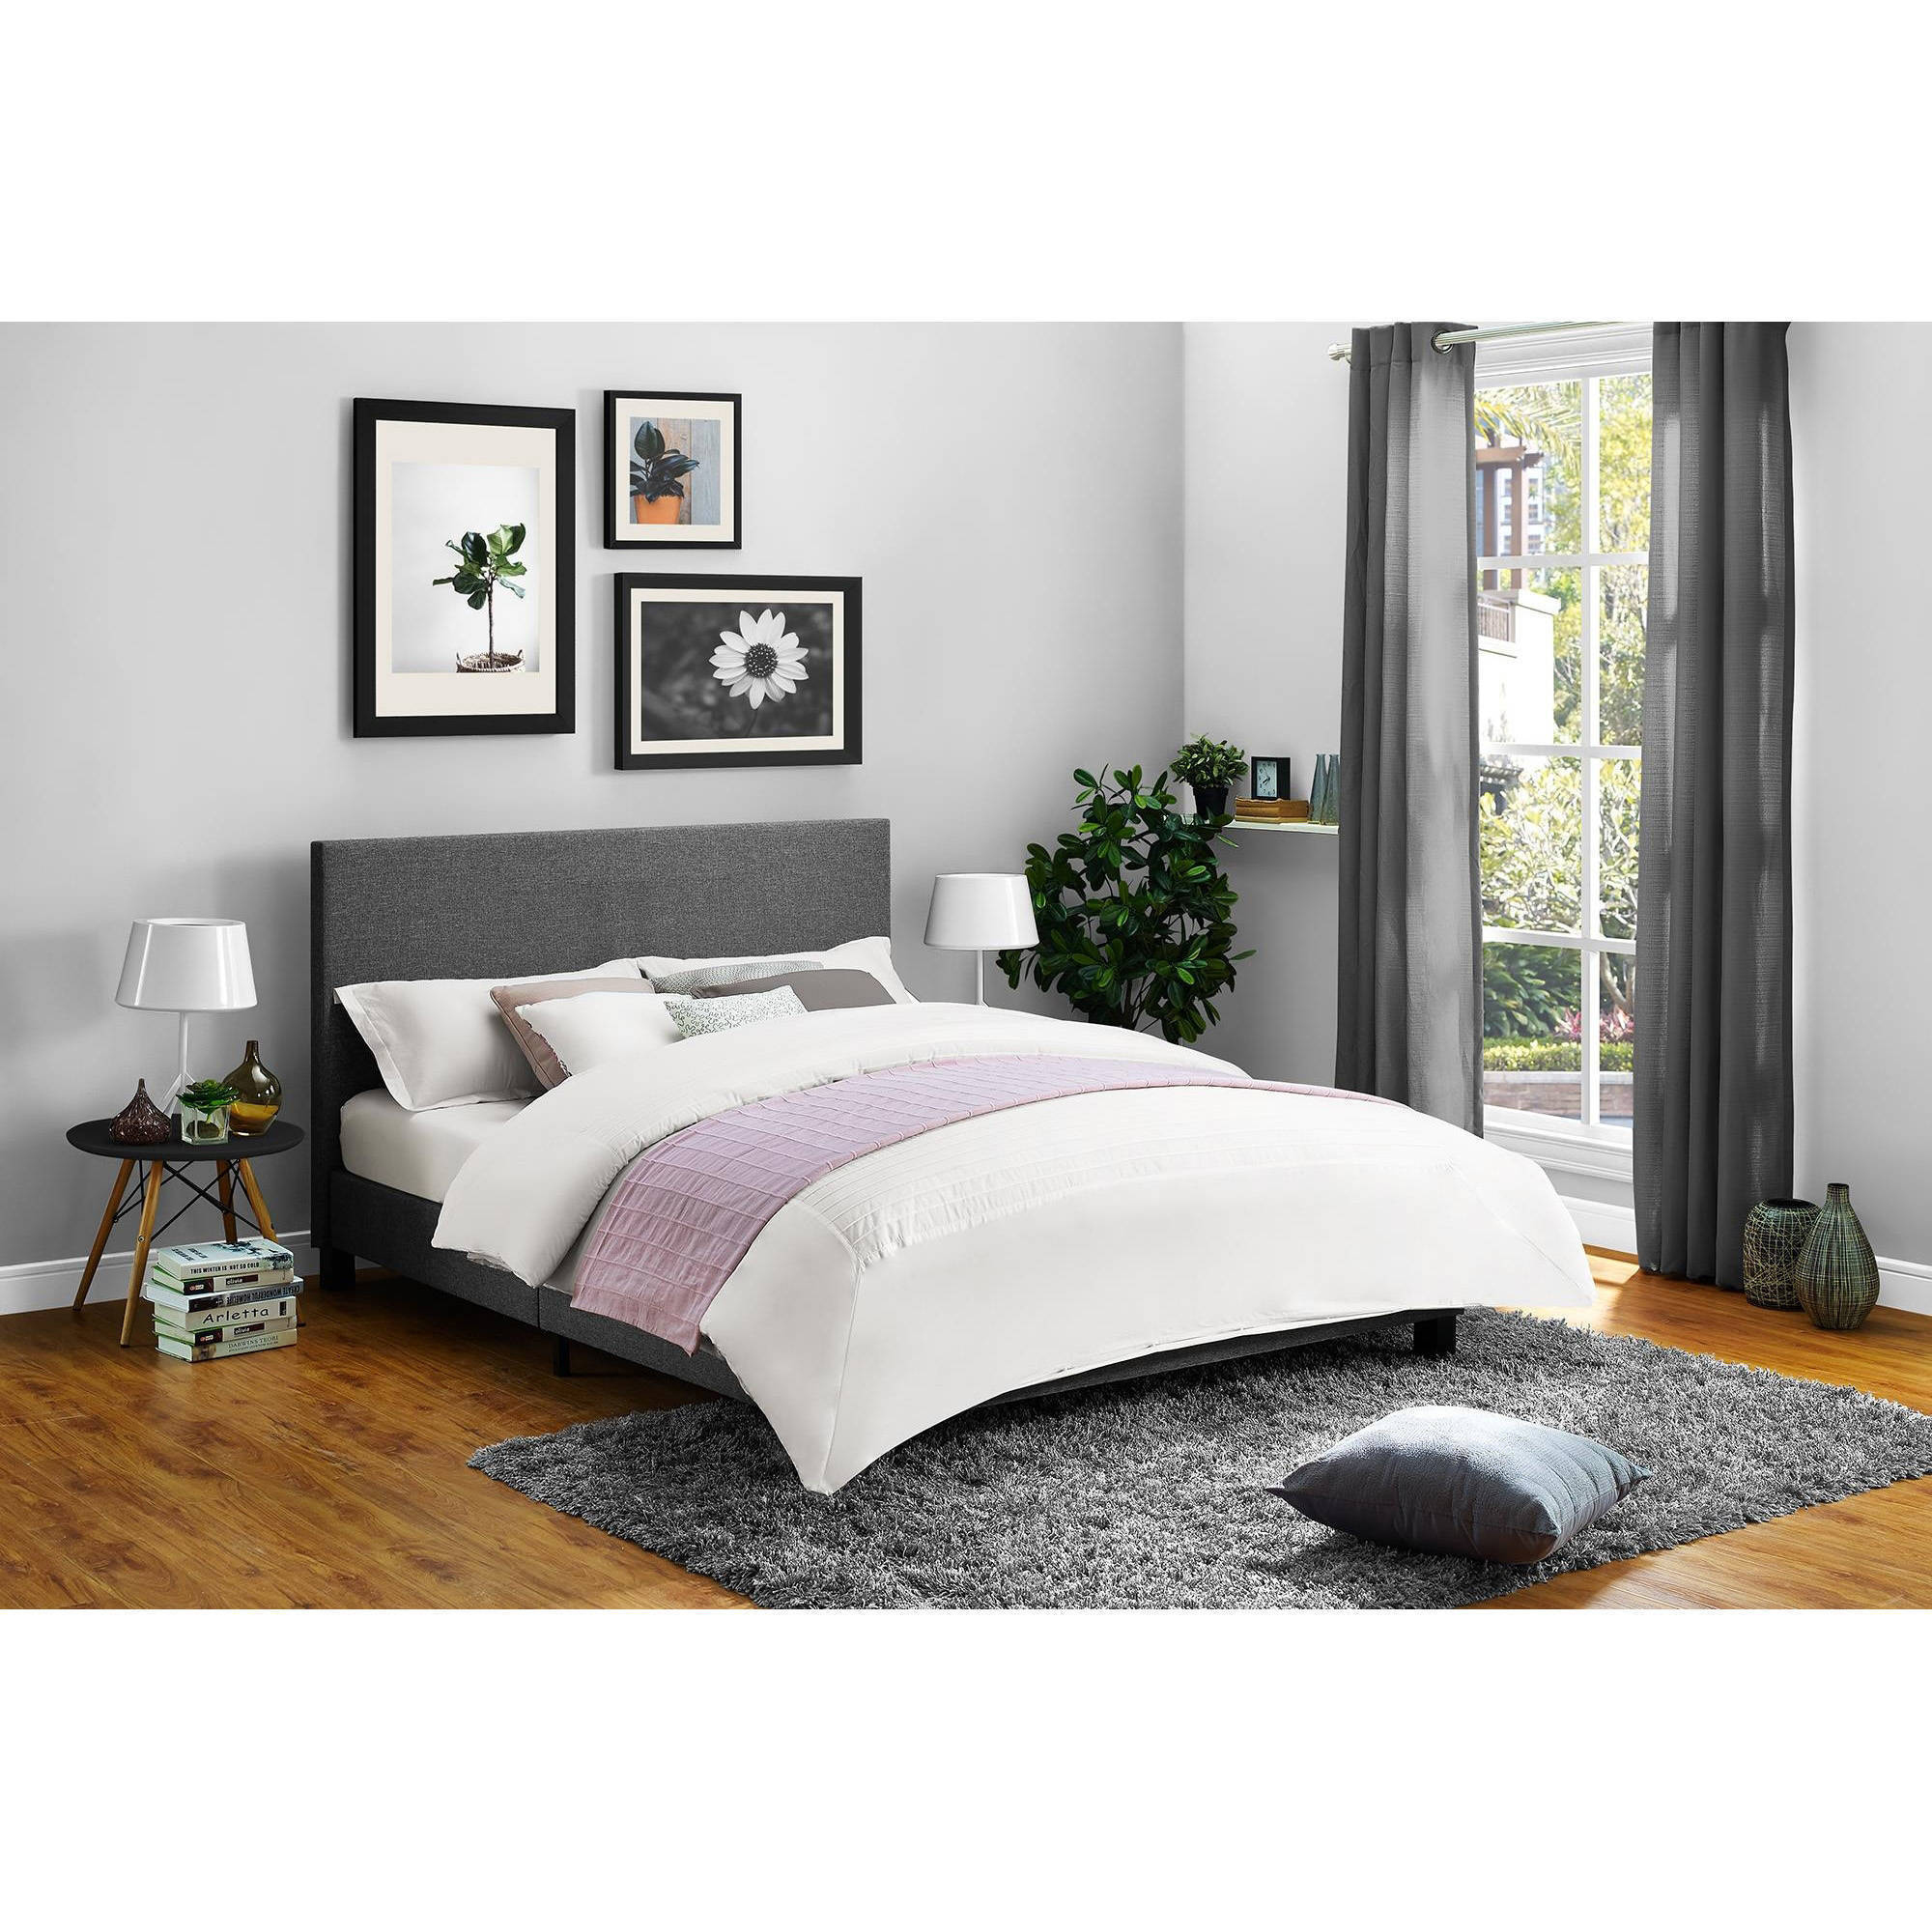 Mainstays Upholstered Bed, Multiple Sizes, Multiple Colors